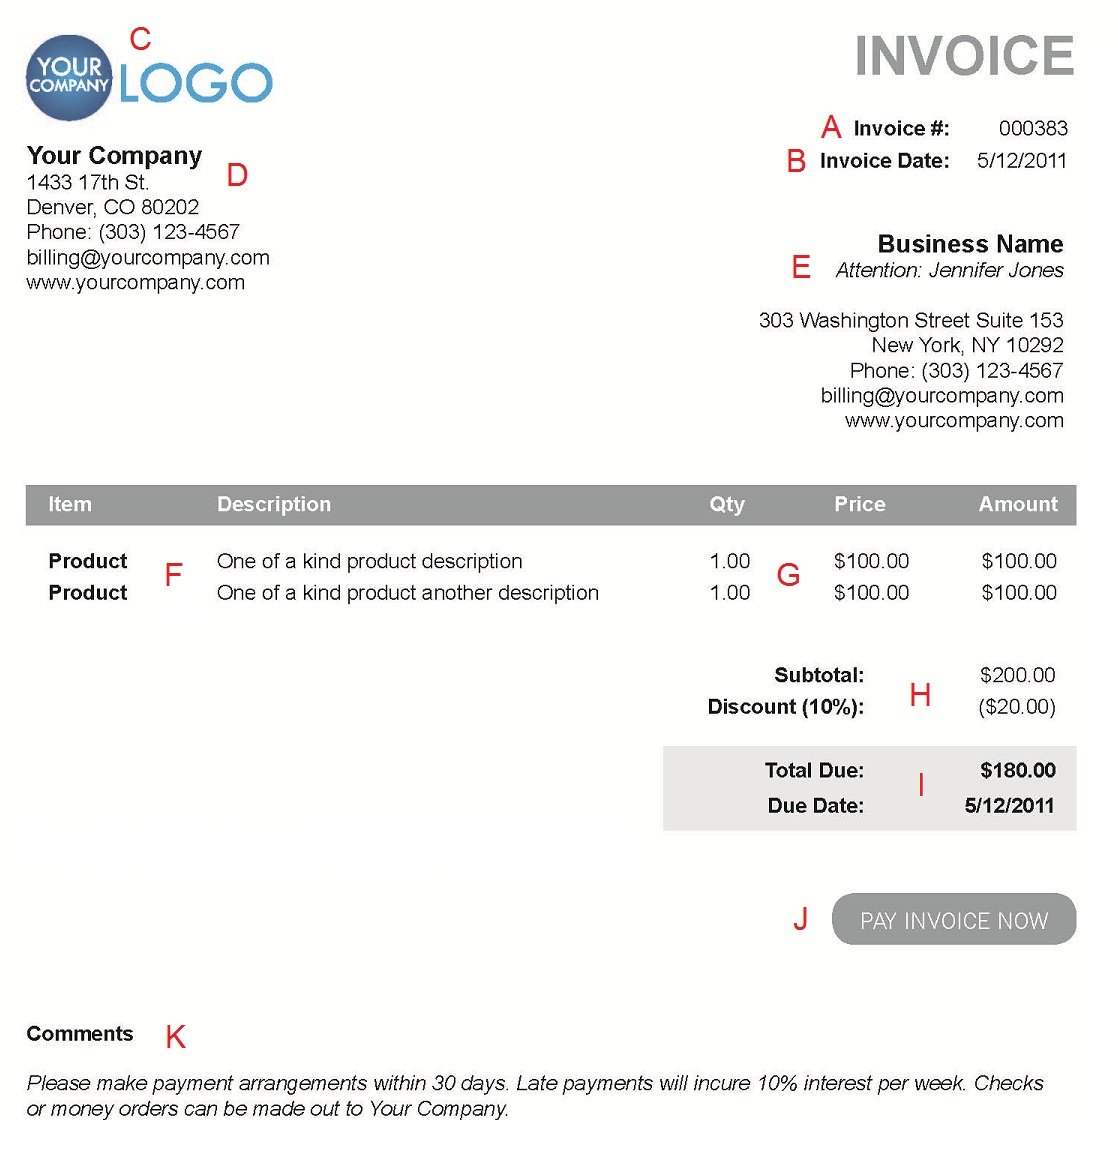 Bringjacobolivierhomeus  Pleasant The  Different Sections Of An Electronic Payment Invoice With Exciting A  With Captivating Match Invoice Also Blank Invoice Form Free In Addition Microsoft Word Invoice Template  And Invoics As Well As Triplicate Invoice Books Additionally Invoice Photography Template From Paysimplecom With Bringjacobolivierhomeus  Exciting The  Different Sections Of An Electronic Payment Invoice With Captivating A  And Pleasant Match Invoice Also Blank Invoice Form Free In Addition Microsoft Word Invoice Template  From Paysimplecom